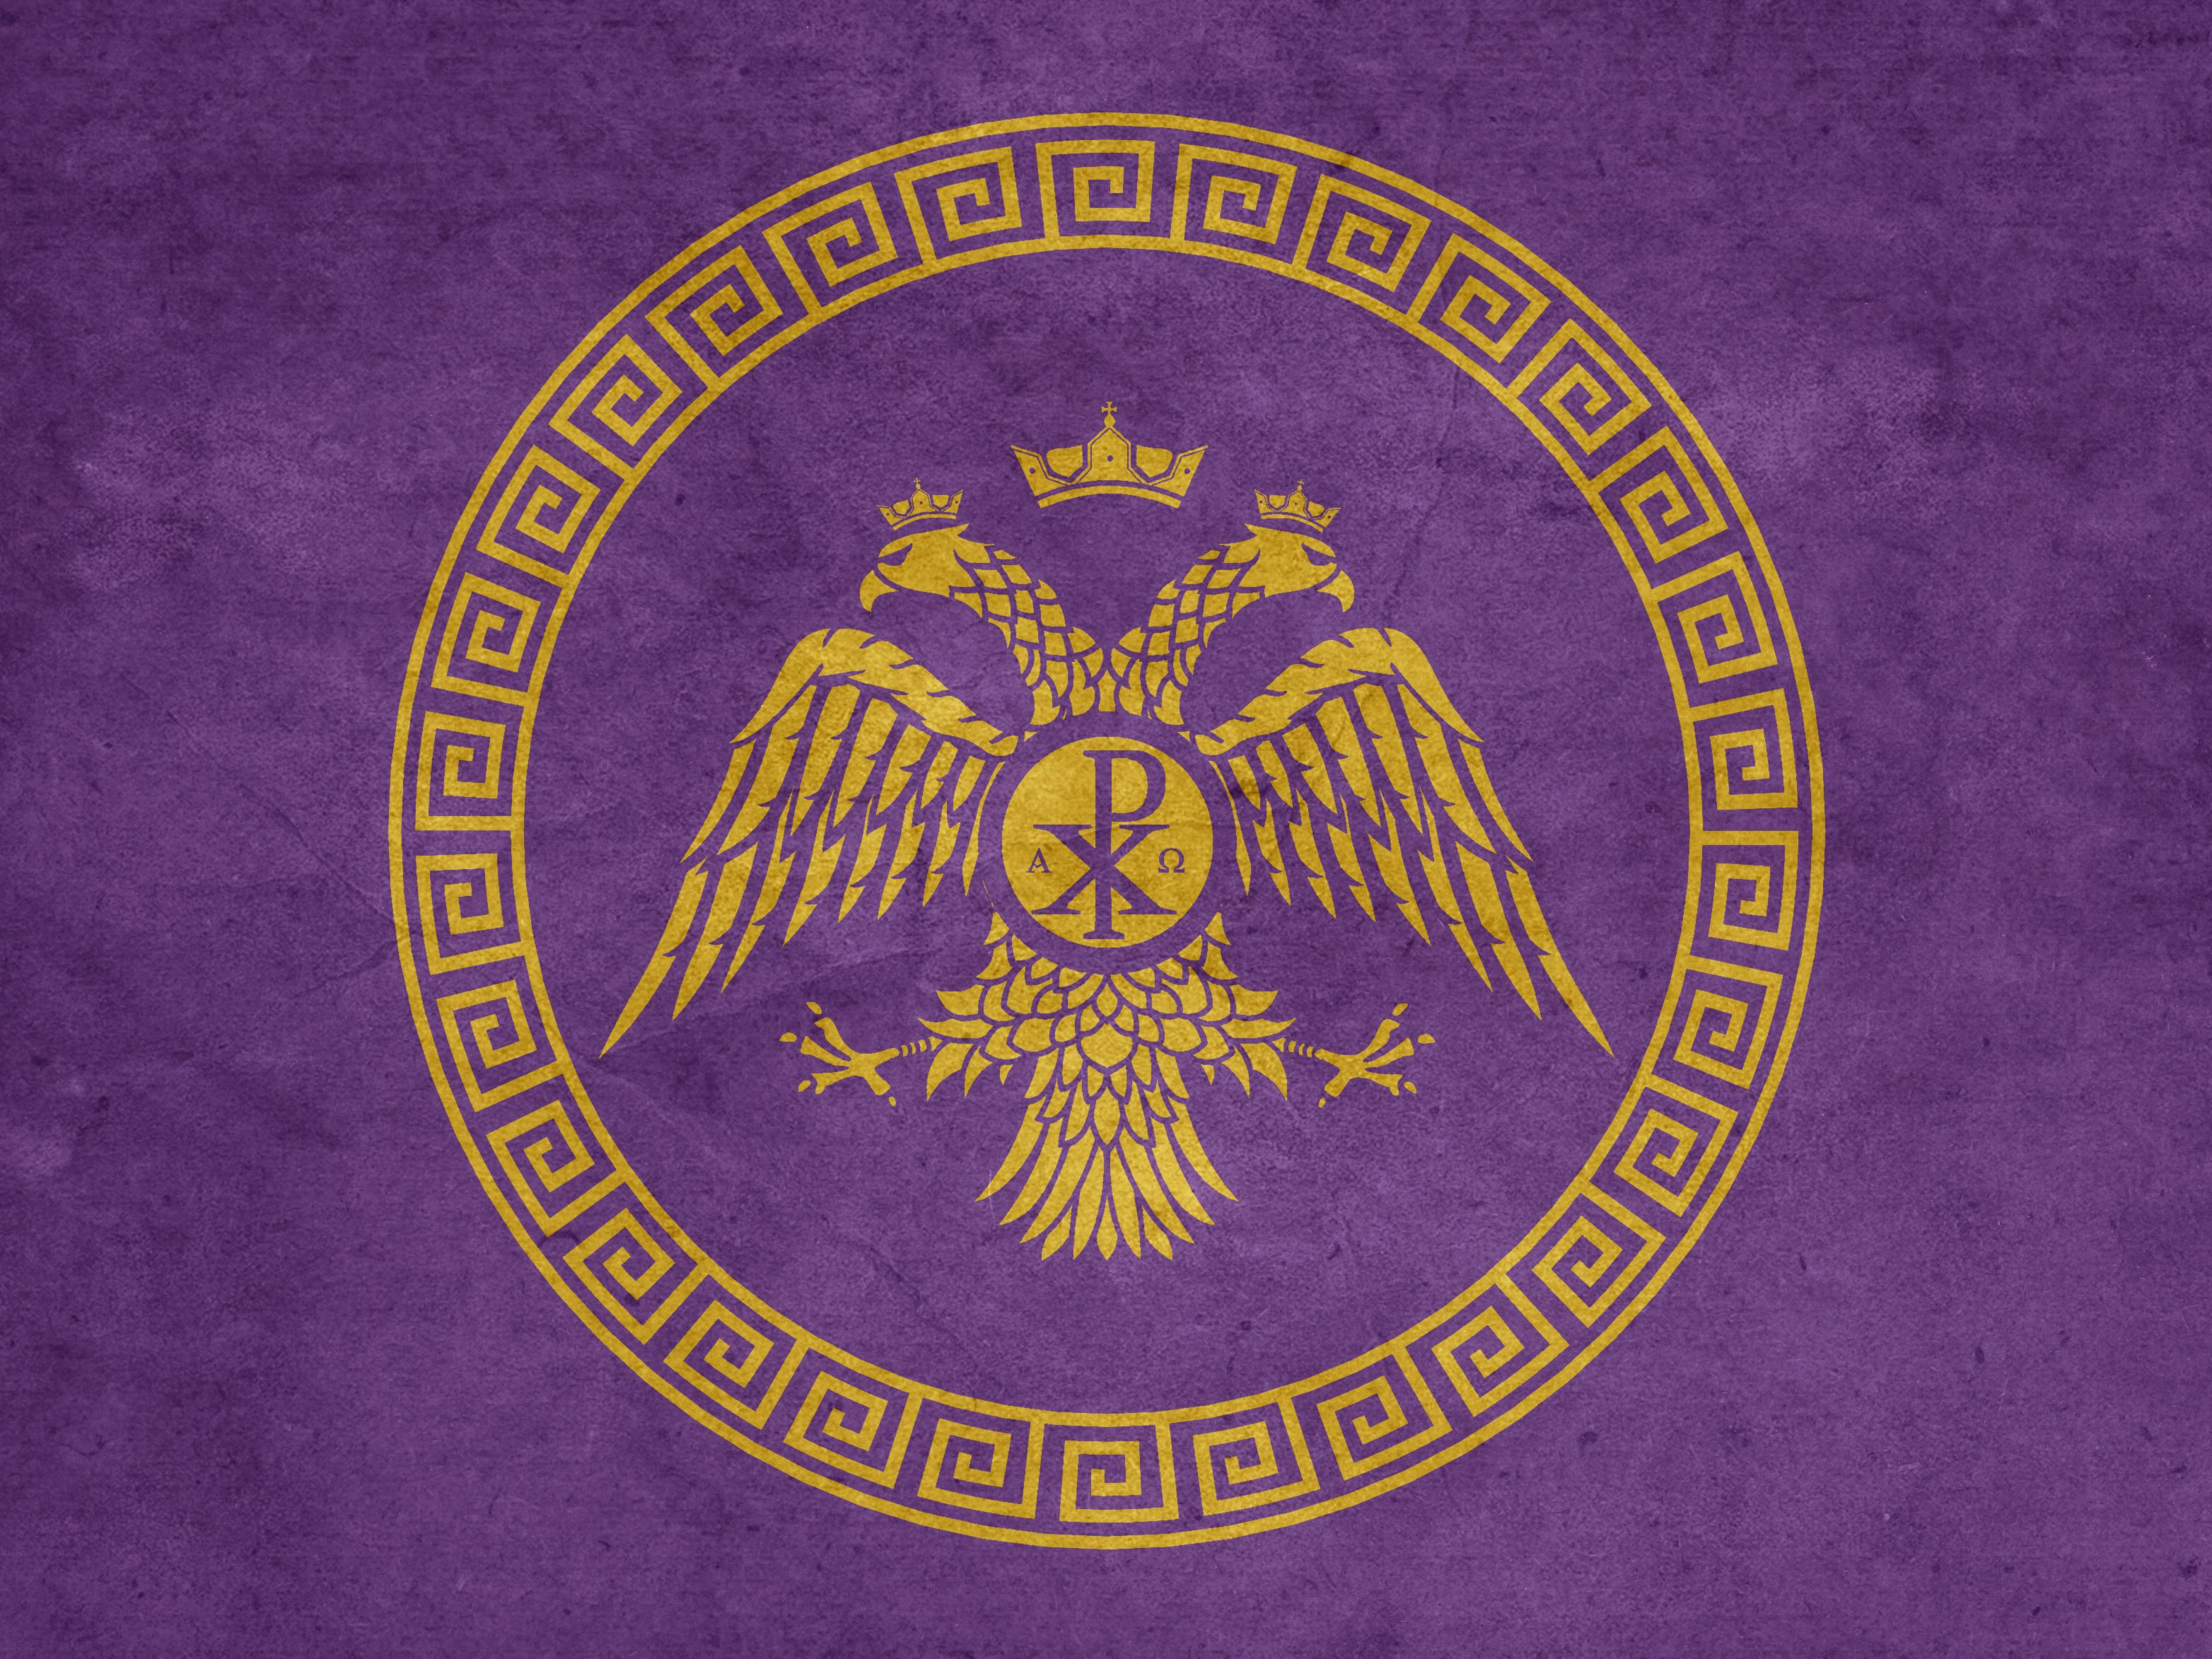 Pin by Dusty Dakota on varangian guard | Byzantine